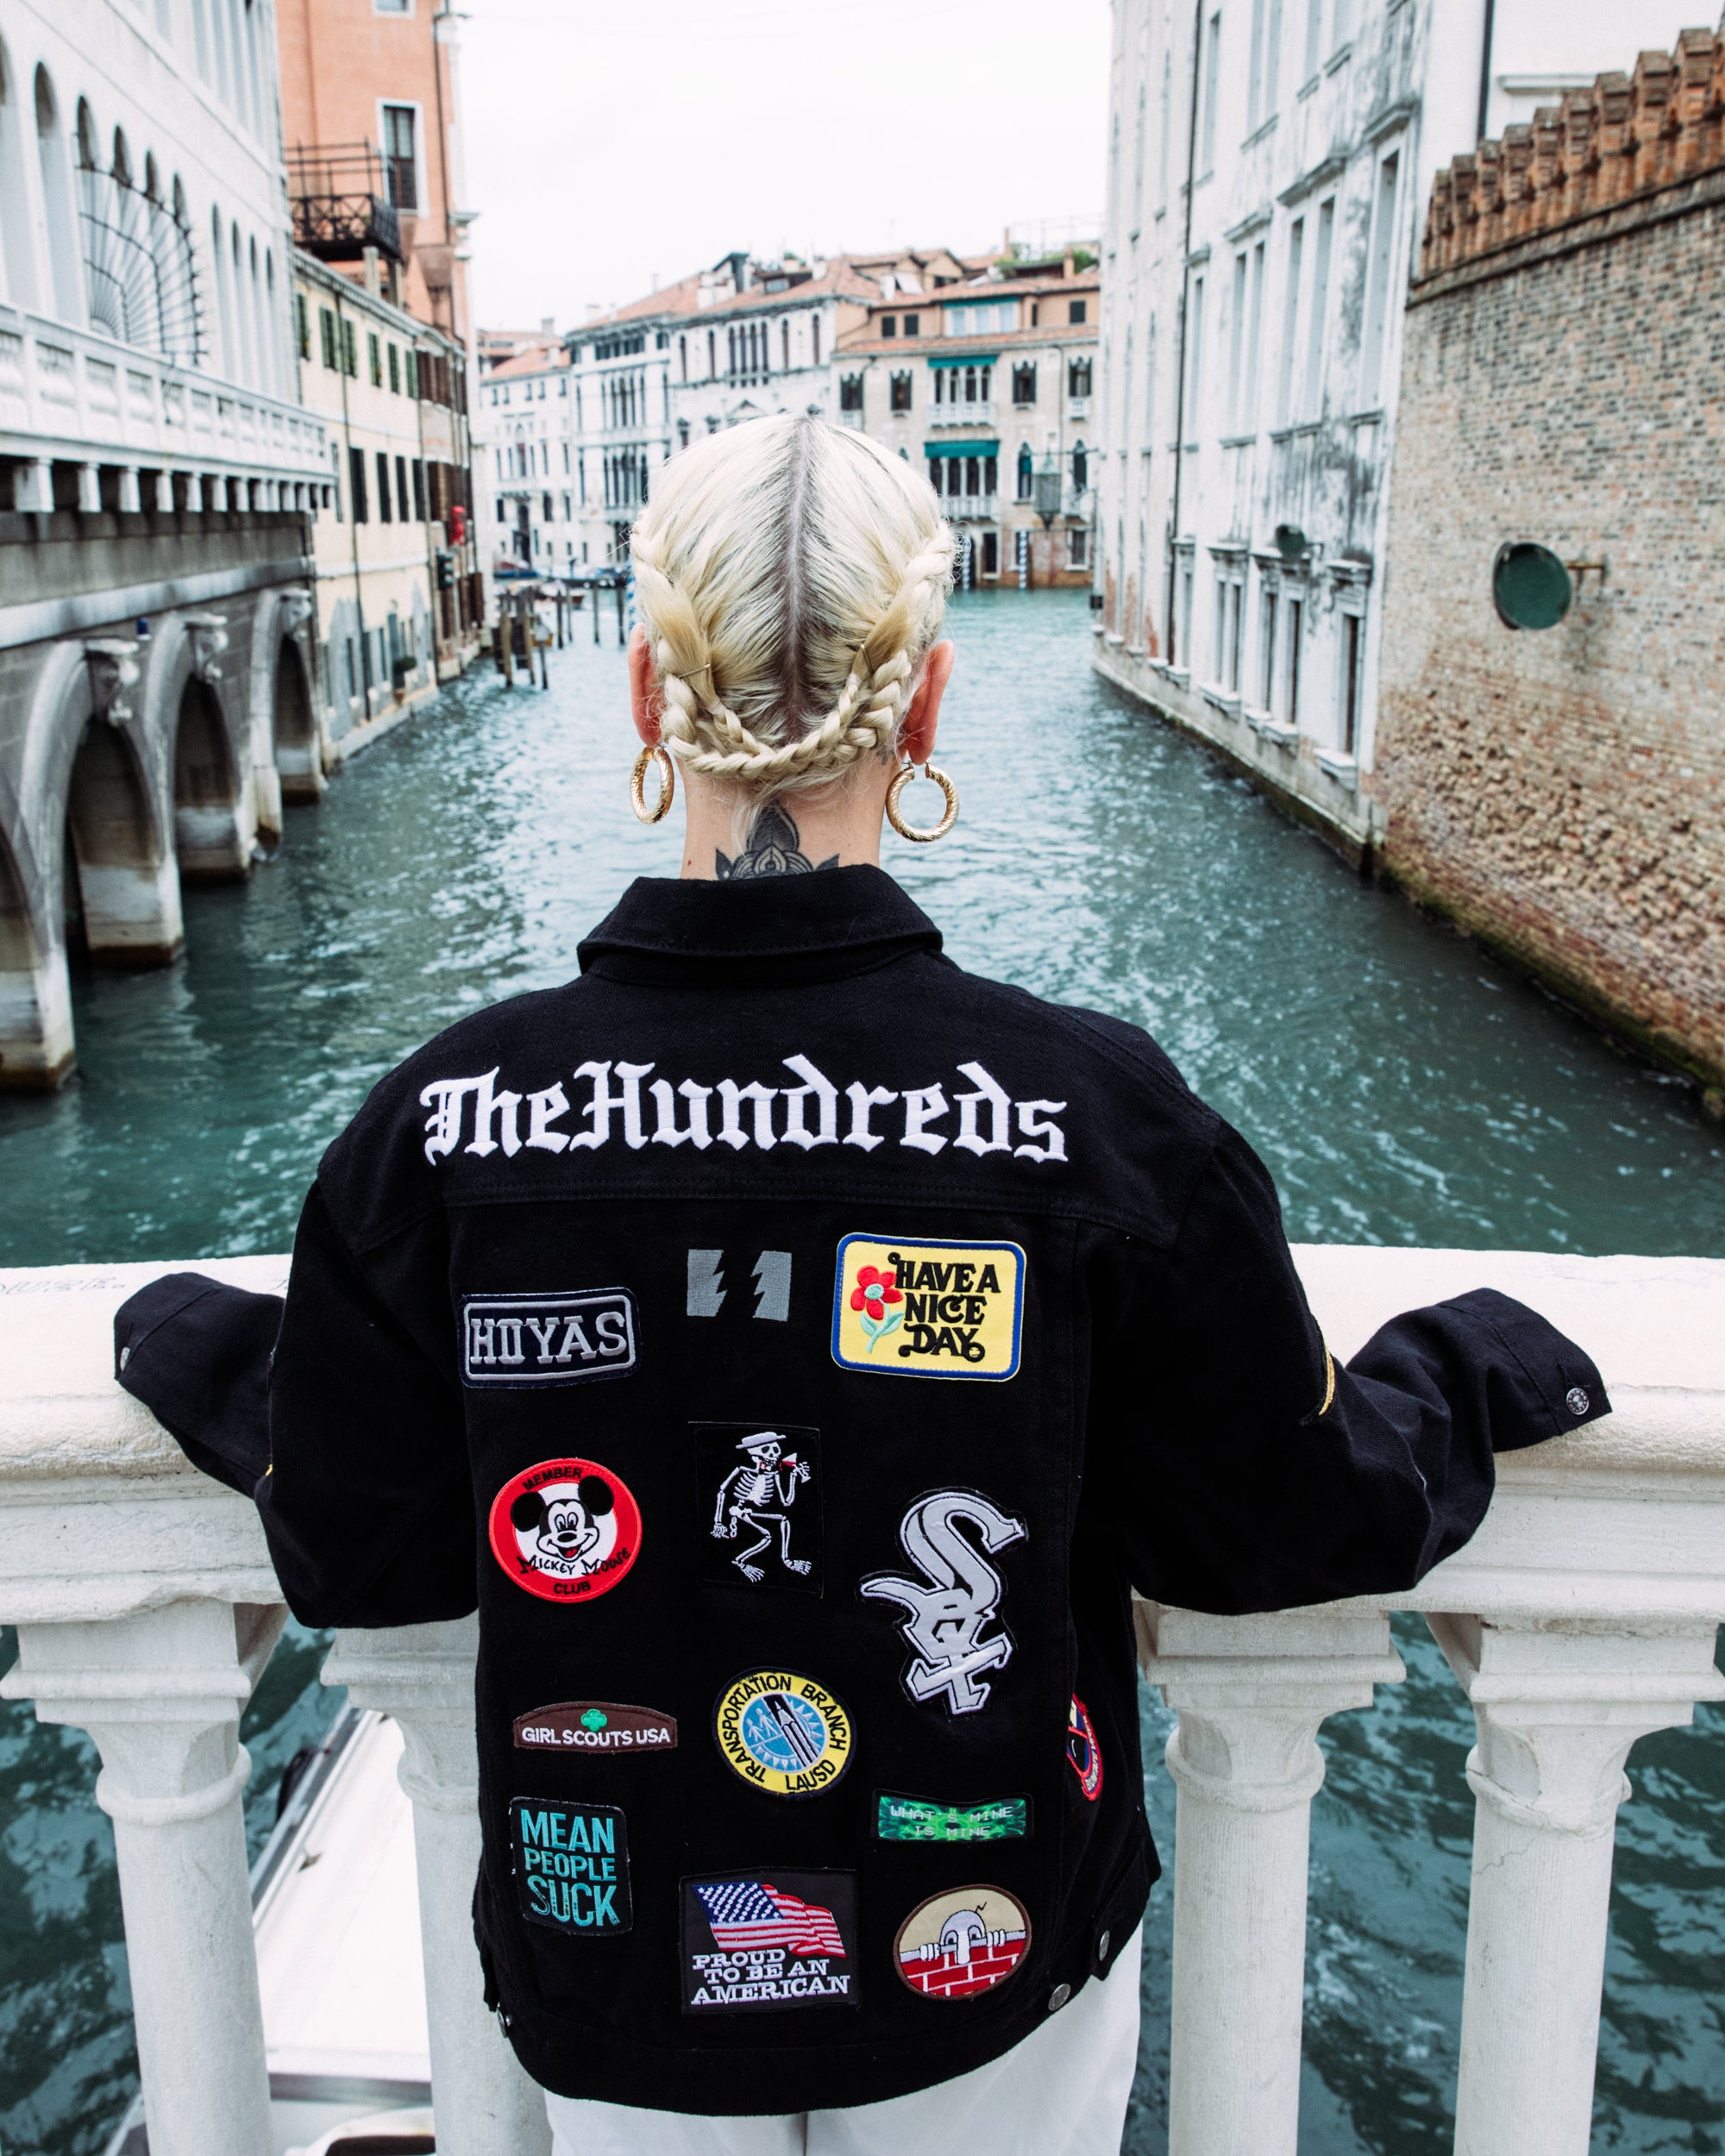 The Hundreds x By Samii Ryan Patch Set